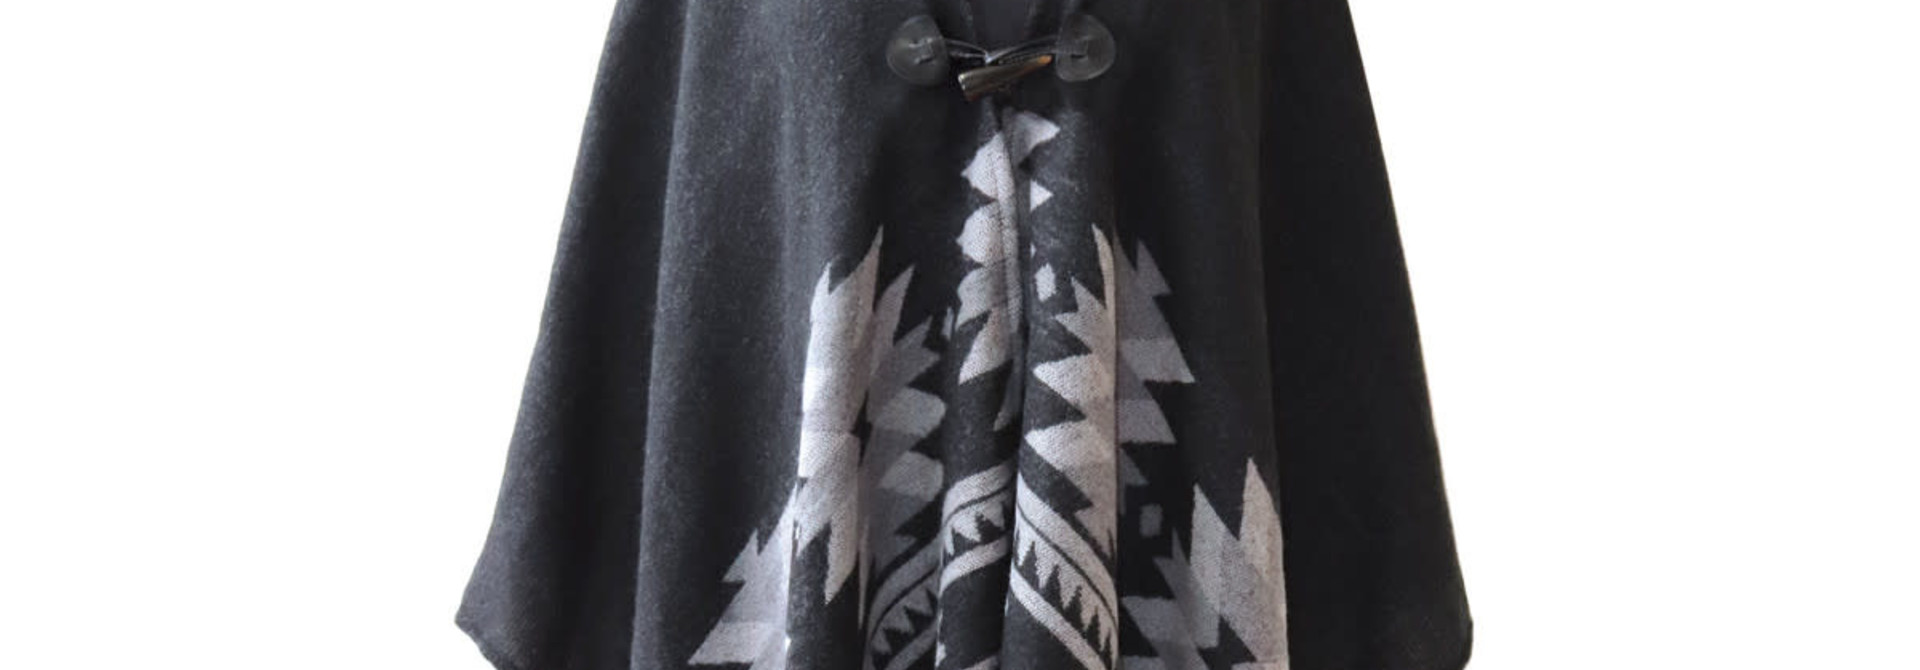 Hooded Fashion Wrap - Vision of Our Ancestors by Leila Stogan